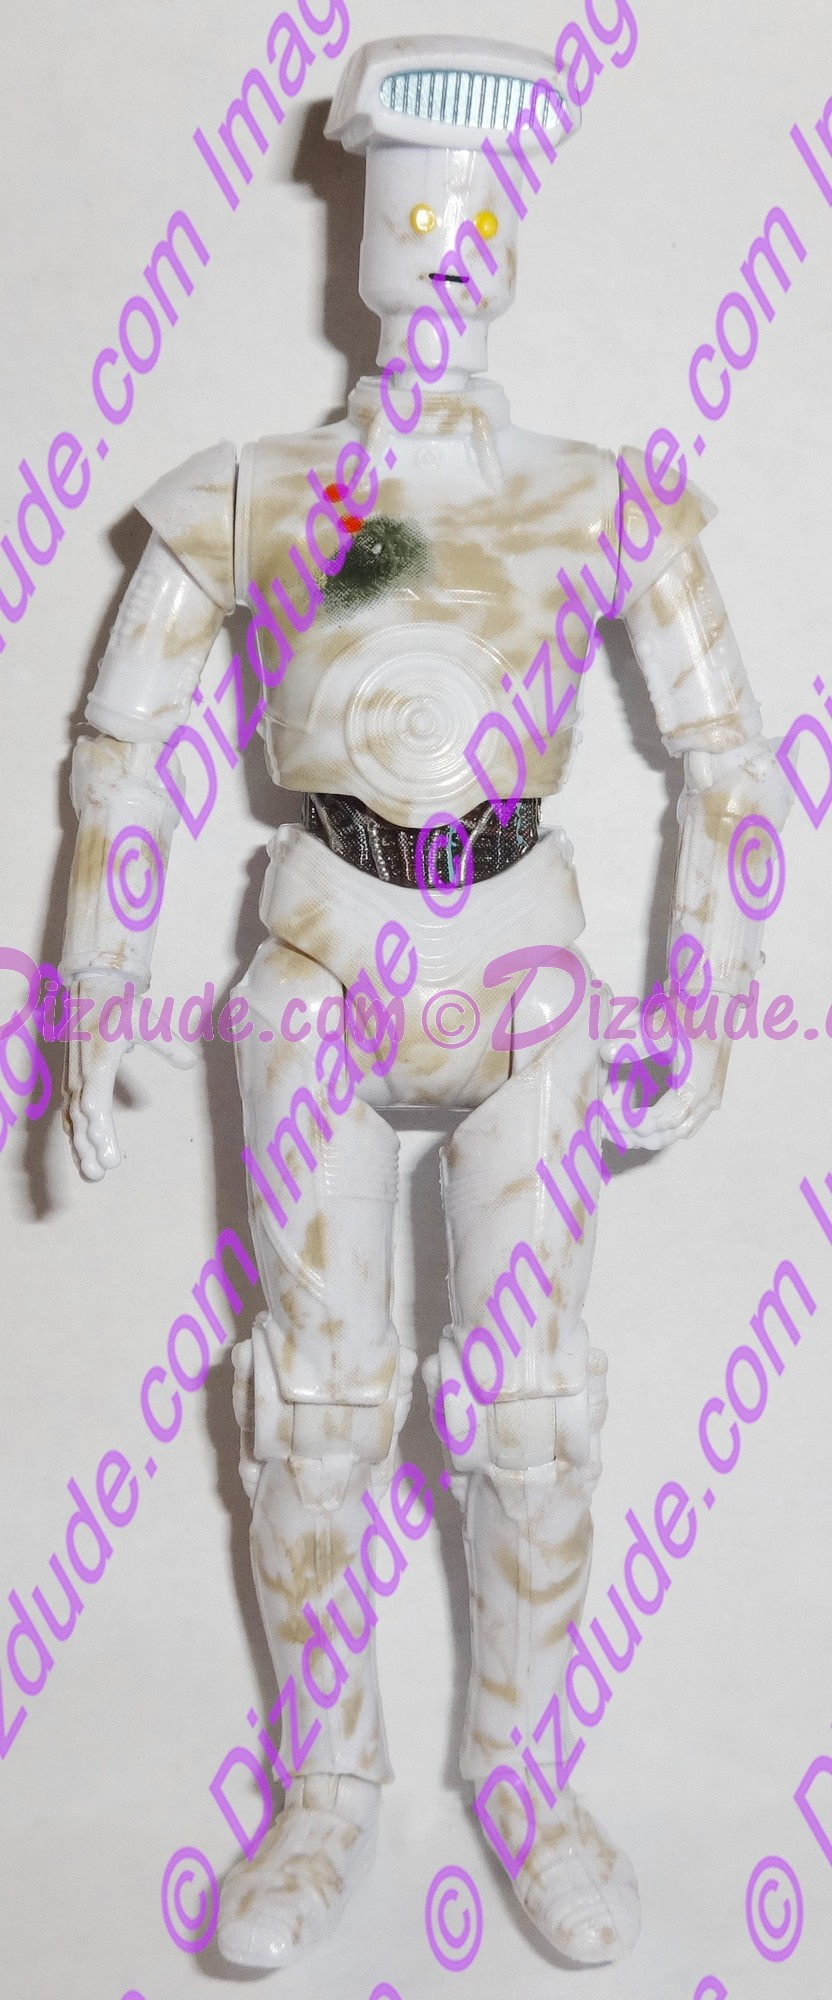 White Vender Protocol Droid from Disney Star Wars Build-A-Droid Factory © Dizdude.com